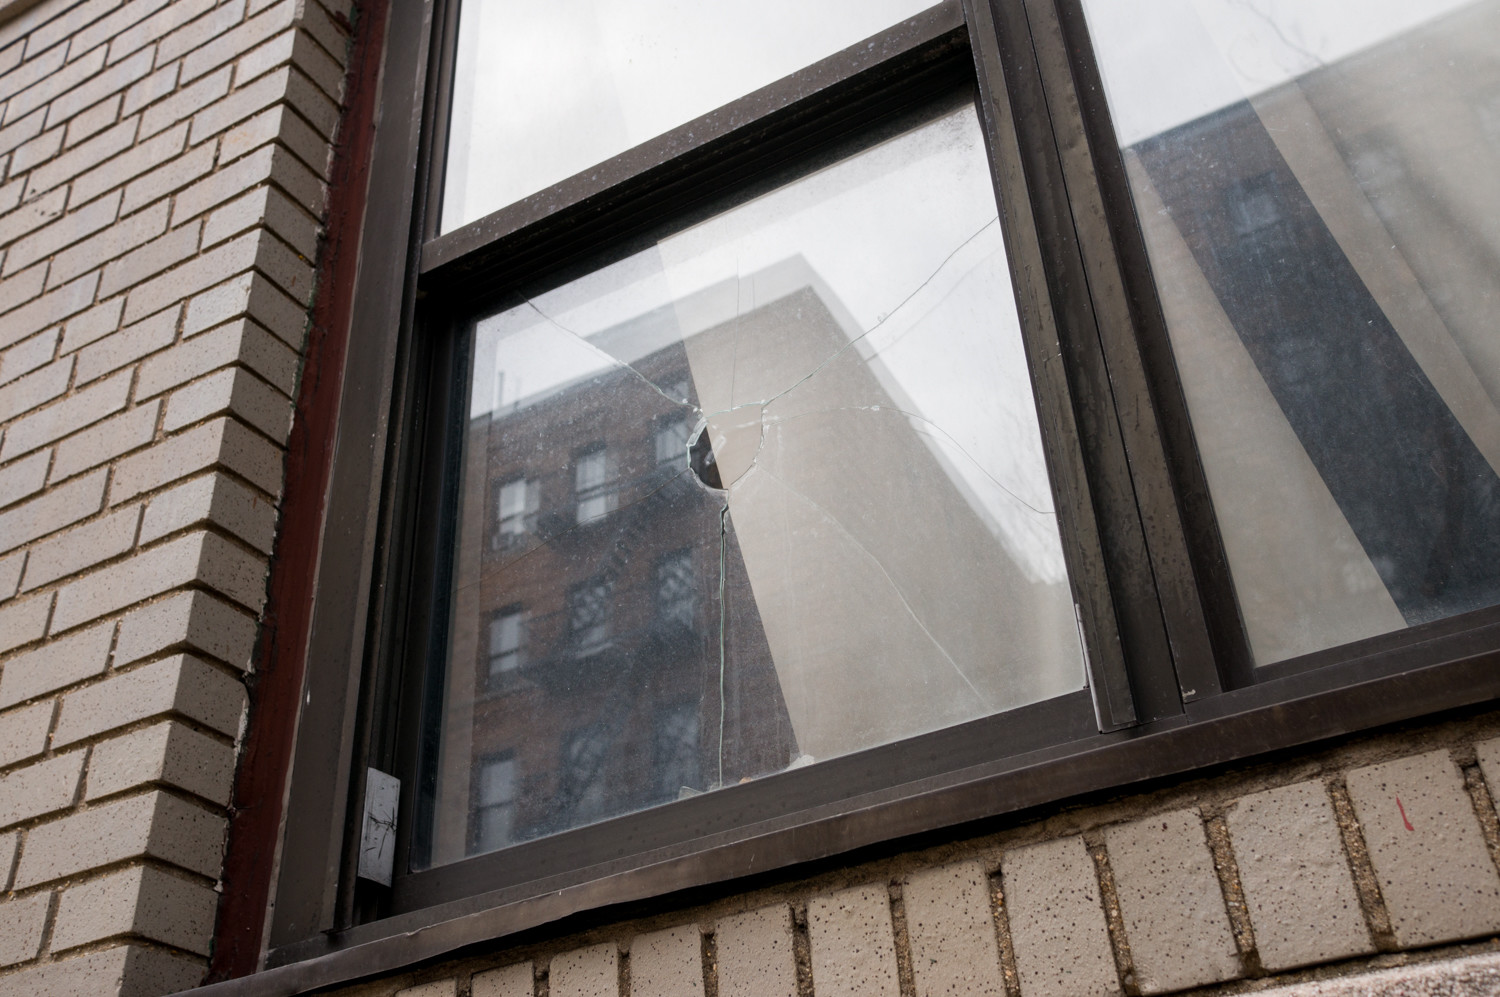 A ground-floor apartment window at 3045 Godwin Terrace has a hole in it.